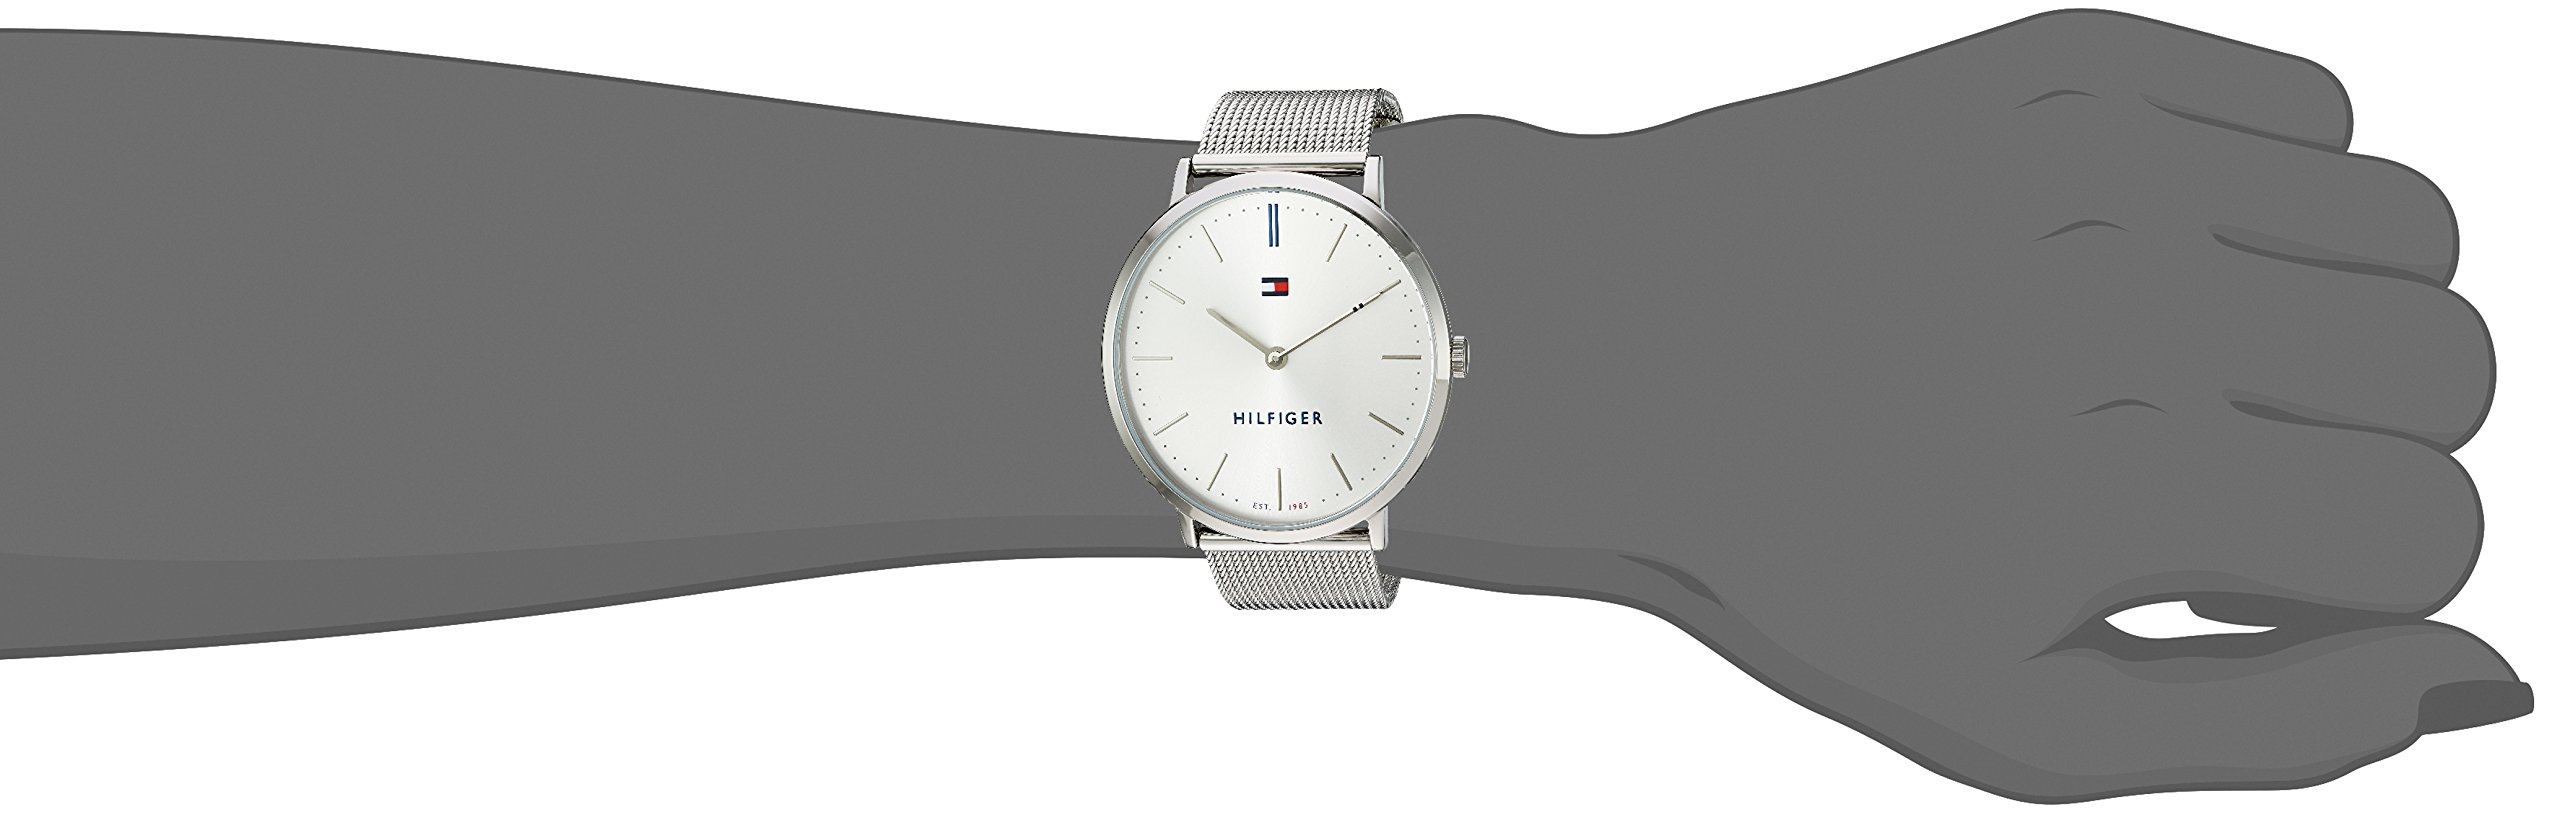 Tommy Hilfiger Women's 'Sophisticated Sport' Quartz Stainless Steel Watch, Color:Silver-Toned (Model: 1781690) by Tommy Hilfiger (Image #2)